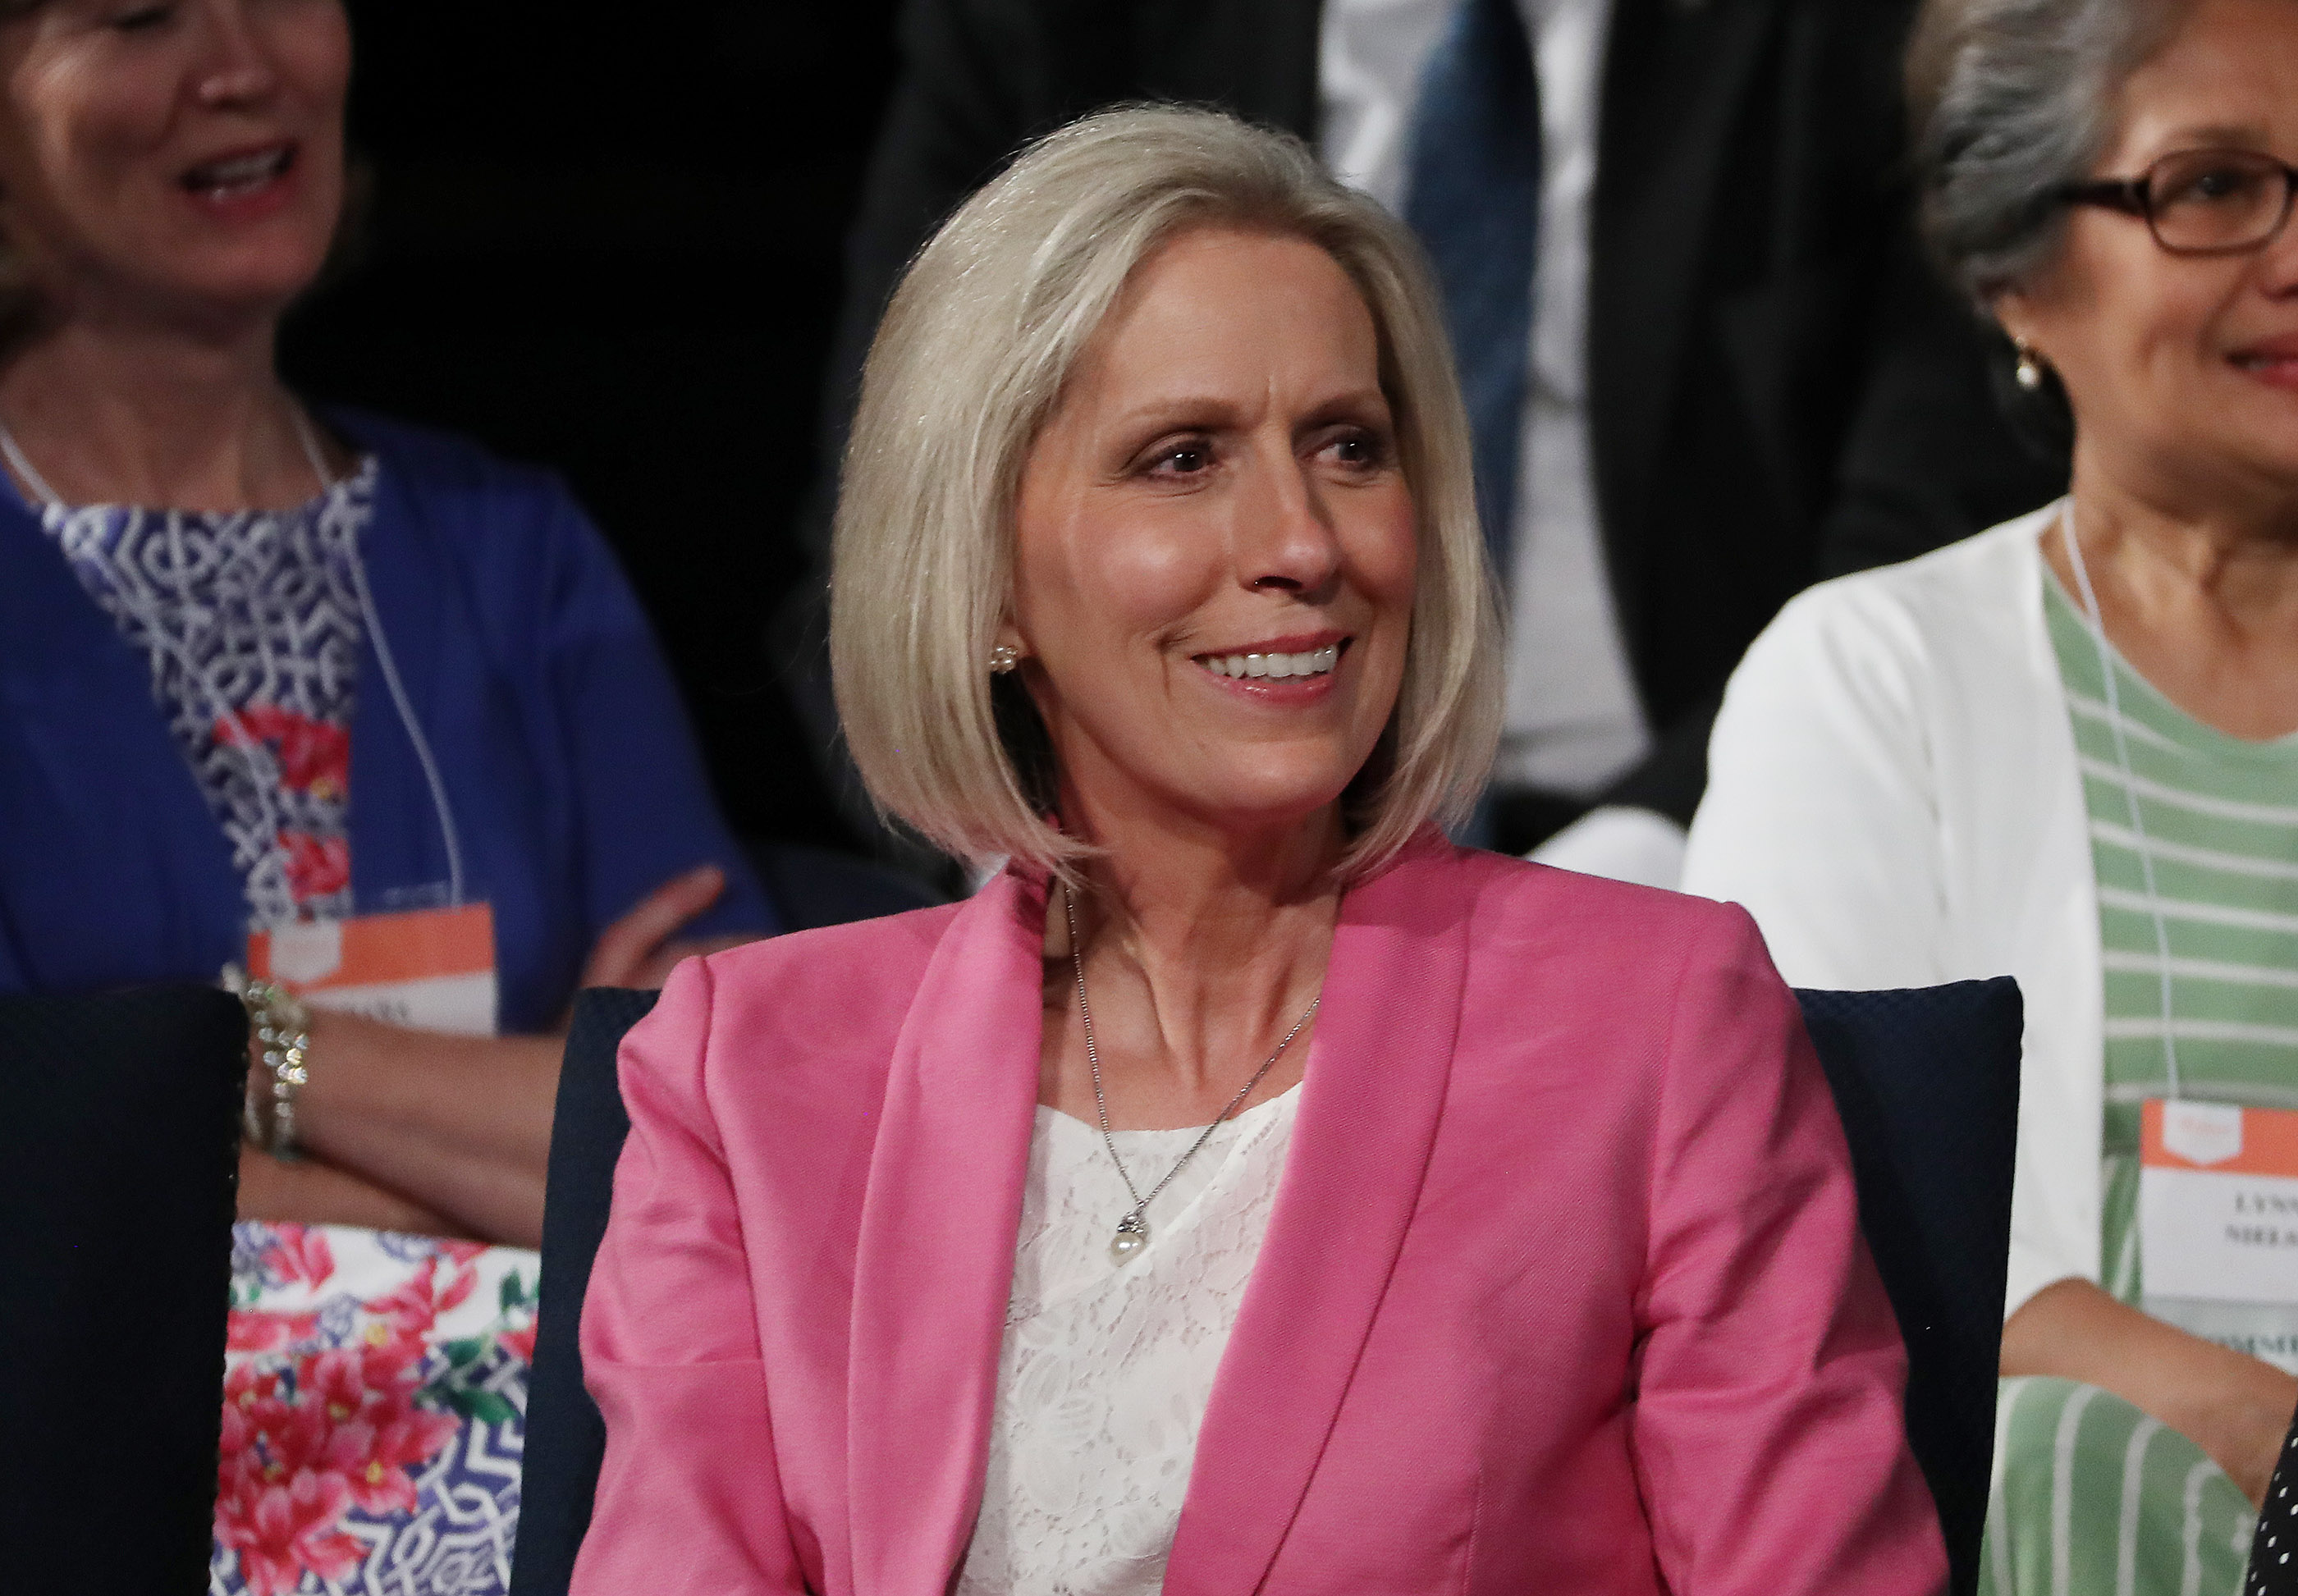 Sister Joy D. Jones, Primary general president of The Church of Jesus Christ of Latter-day Saints, attends BYU Women's Conference in Provo on Friday, May 3, 2019.